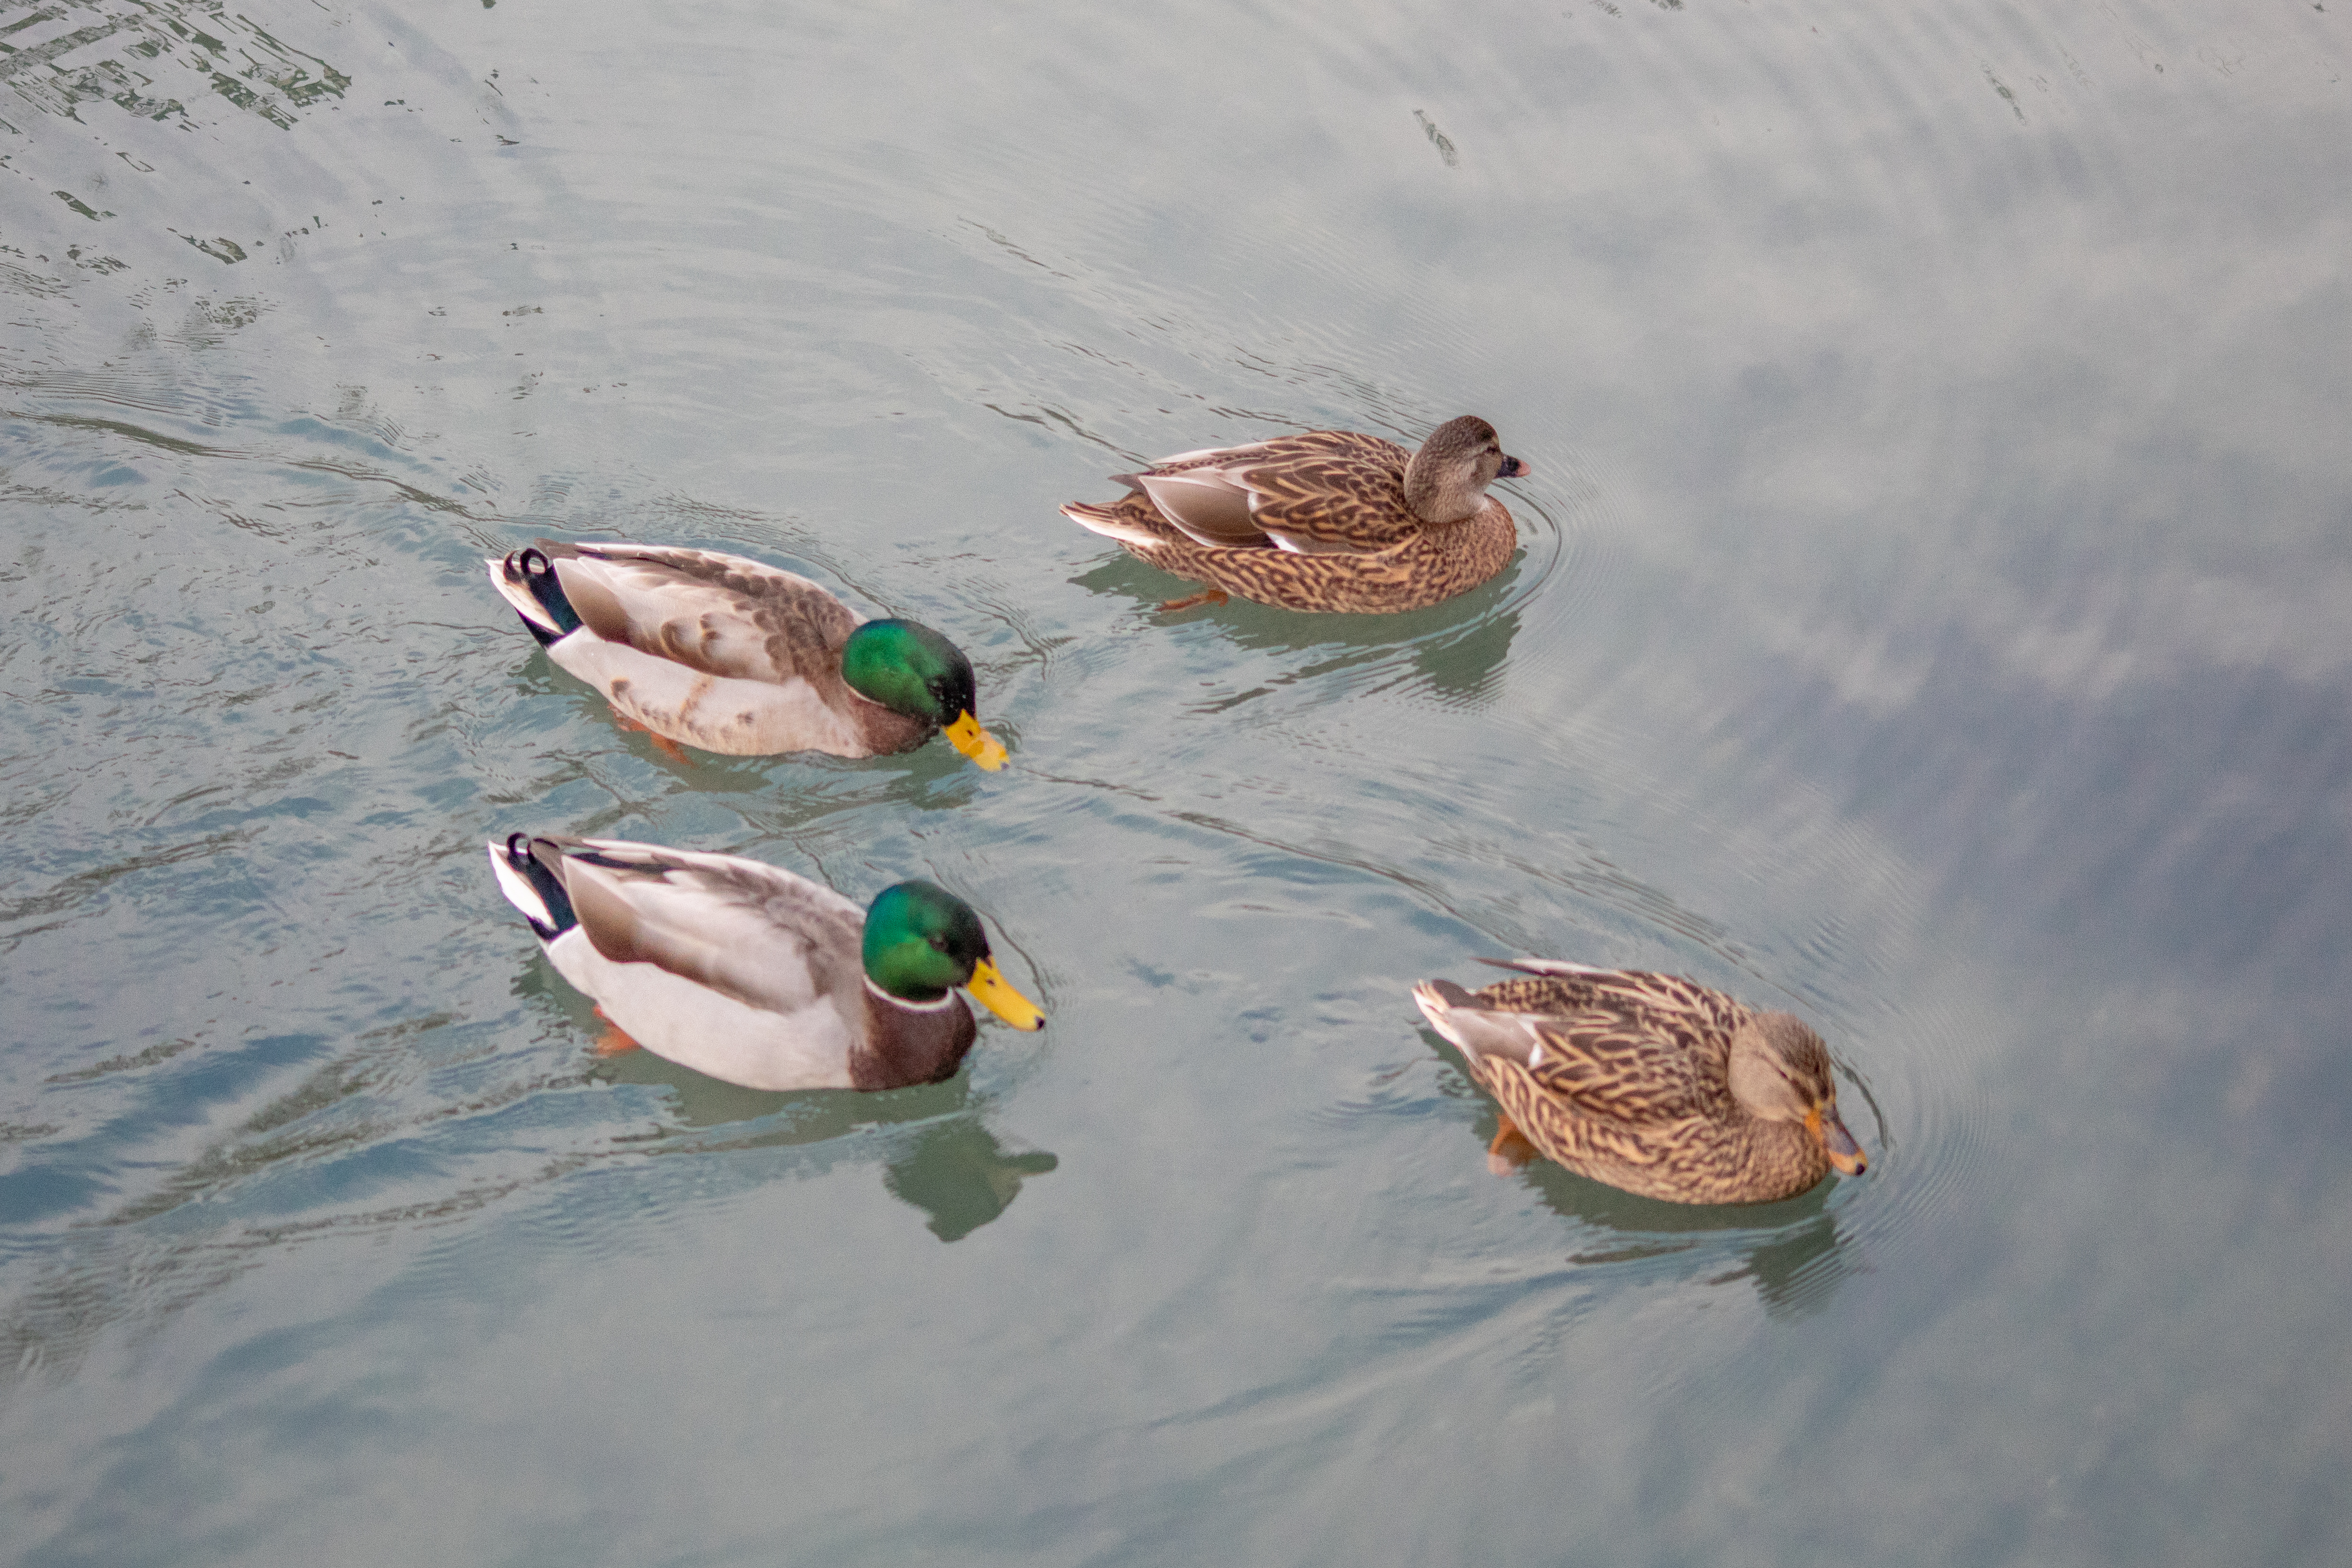 Two Drakes and Two Female Ducks Swimming in a River